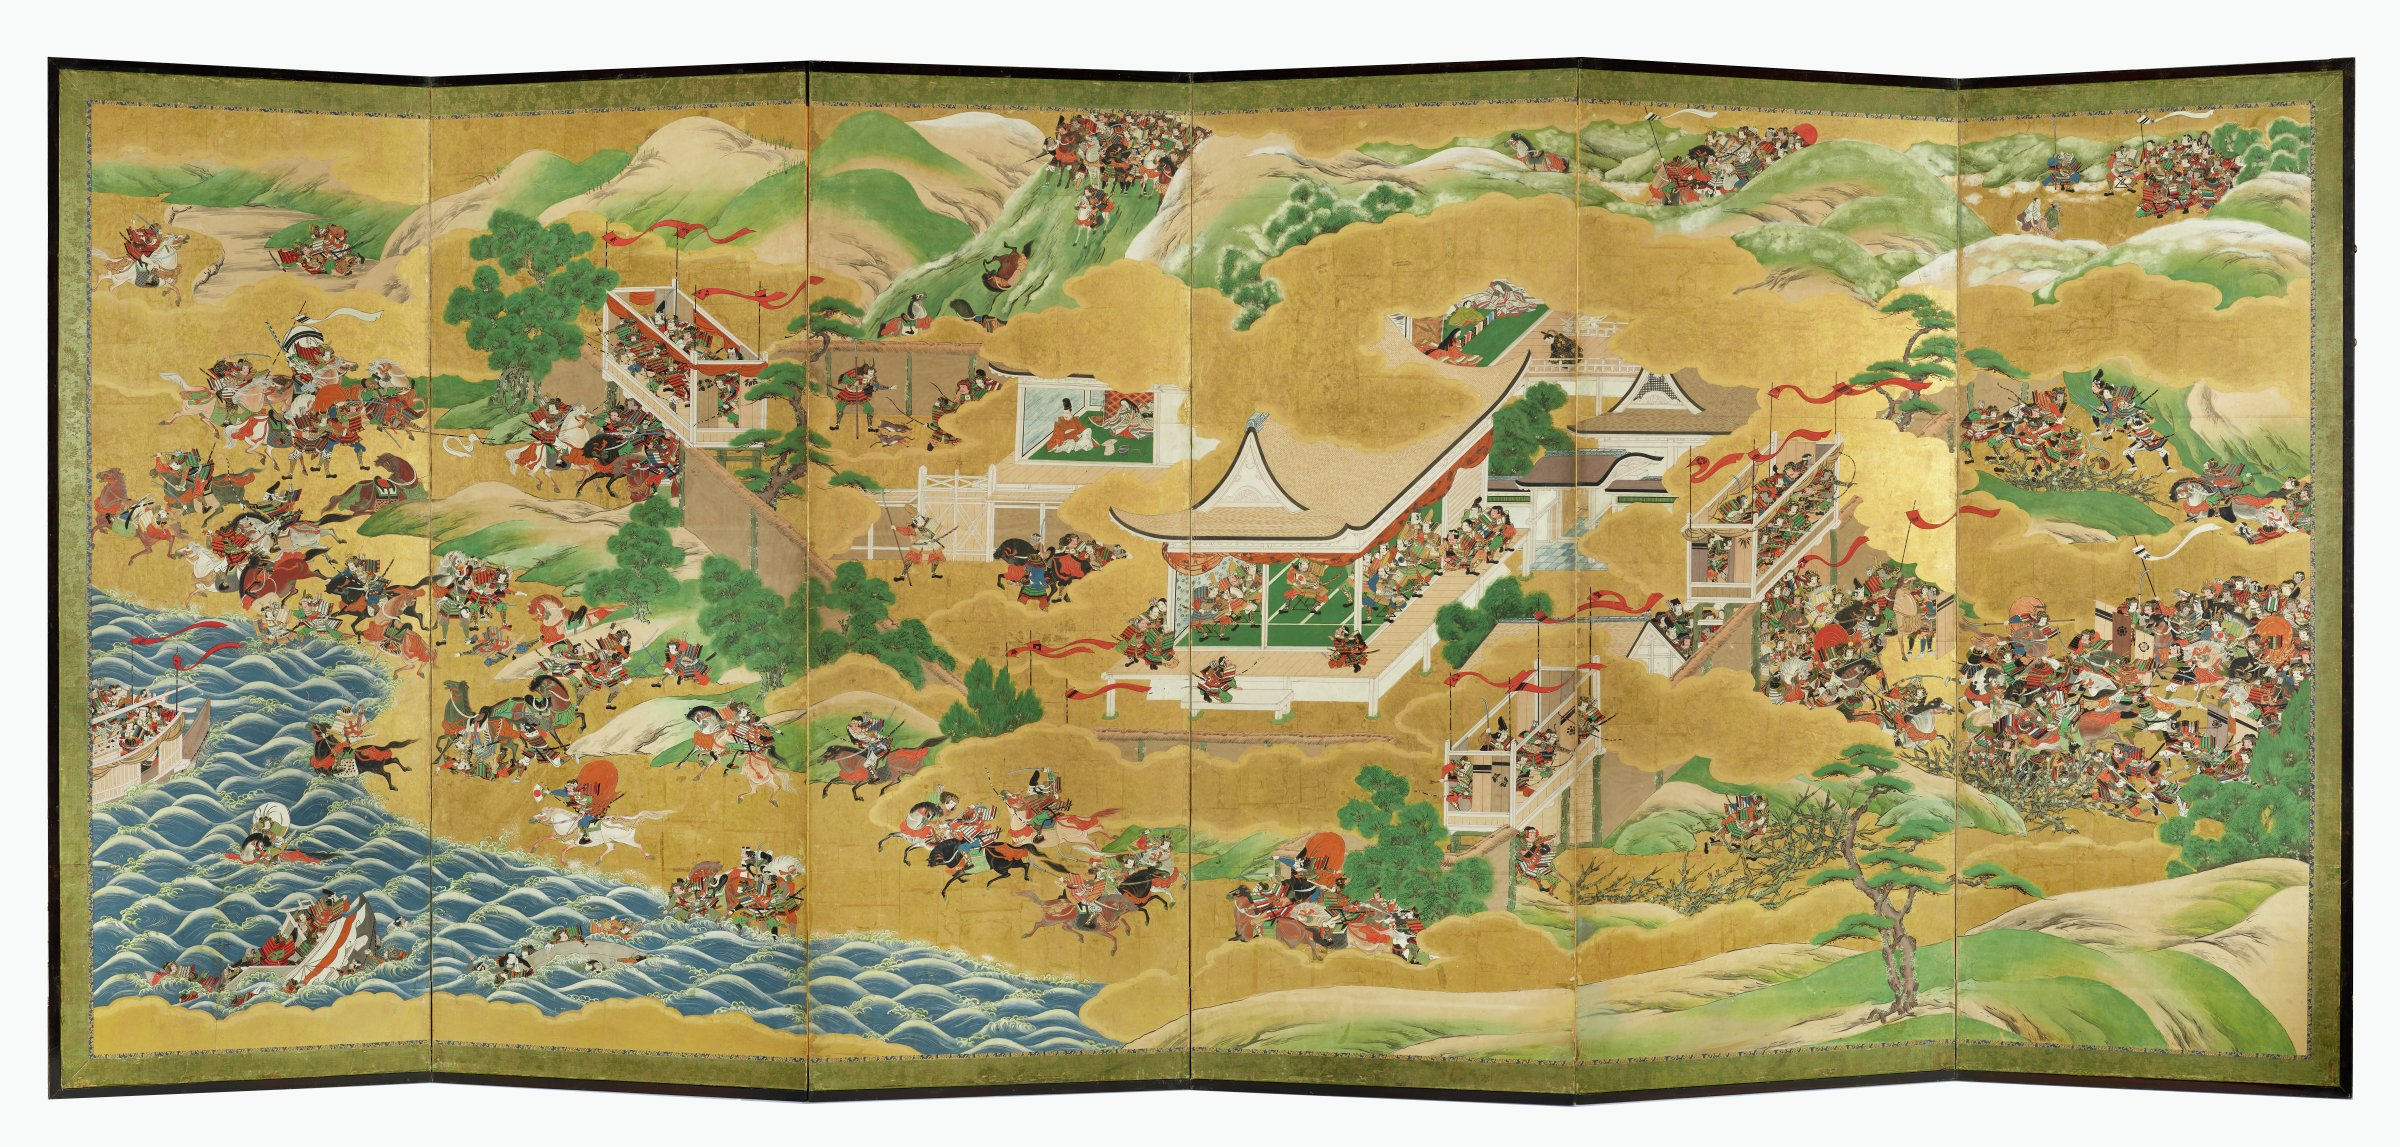 "A large-scale six-panel folding screen showing various episodes in the Battle of Ichinotani from the ""Tale of the Heike."" Gold clouds separate scenes. Kano school Machi-eshi workshop piece. Companion screen whereabouts unknown."